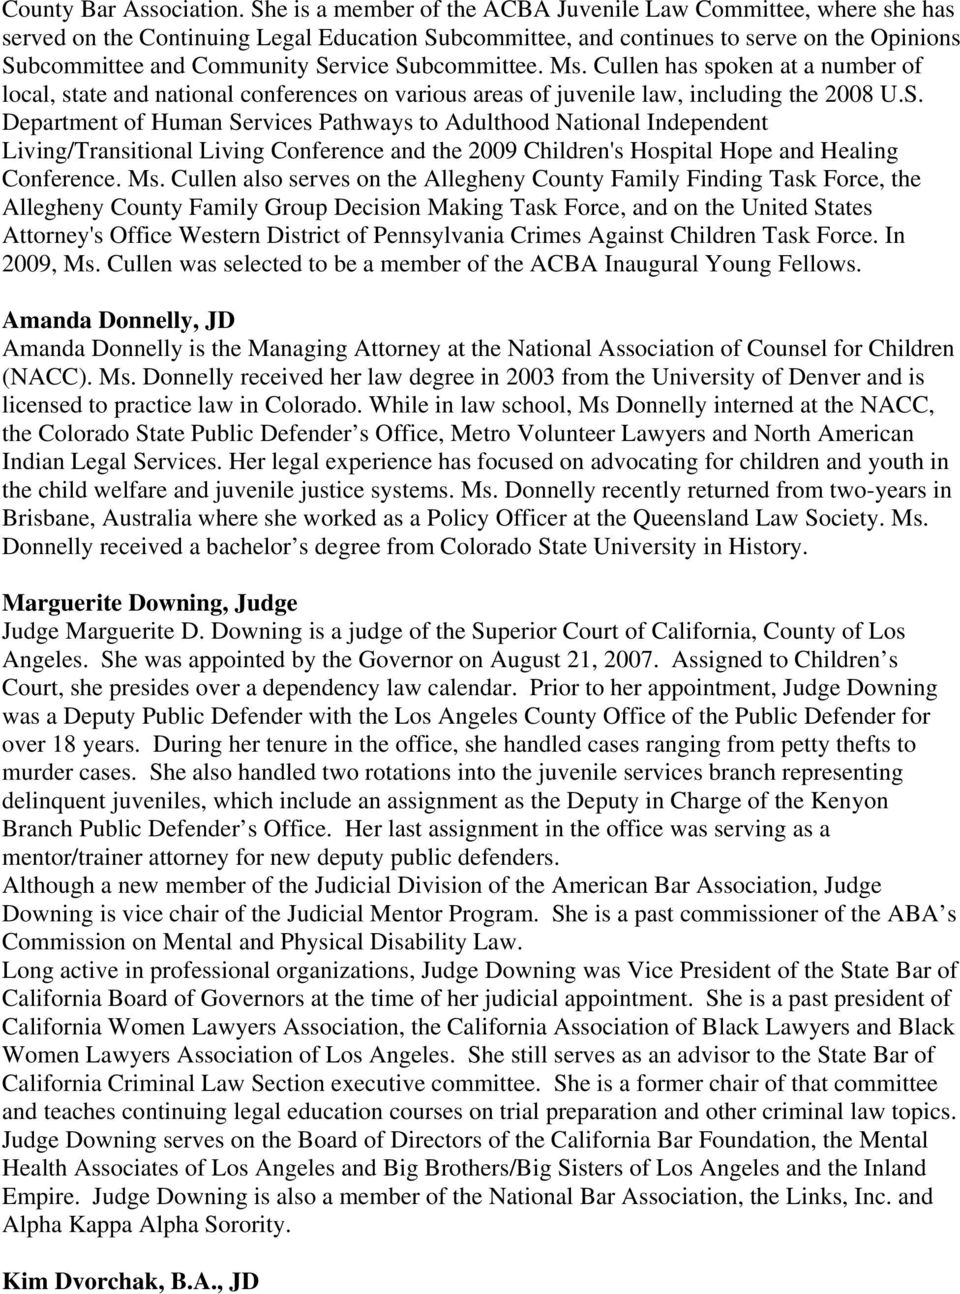 Subcommittee. Ms. Cullen has spoken at a number of local, state and national conferences on various areas of juvenile law, including the 2008 U.S. Department of Human Services Pathways to Adulthood National Independent Living/Transitional Living Conference and the 2009 Children's Hospital Hope and Healing Conference.